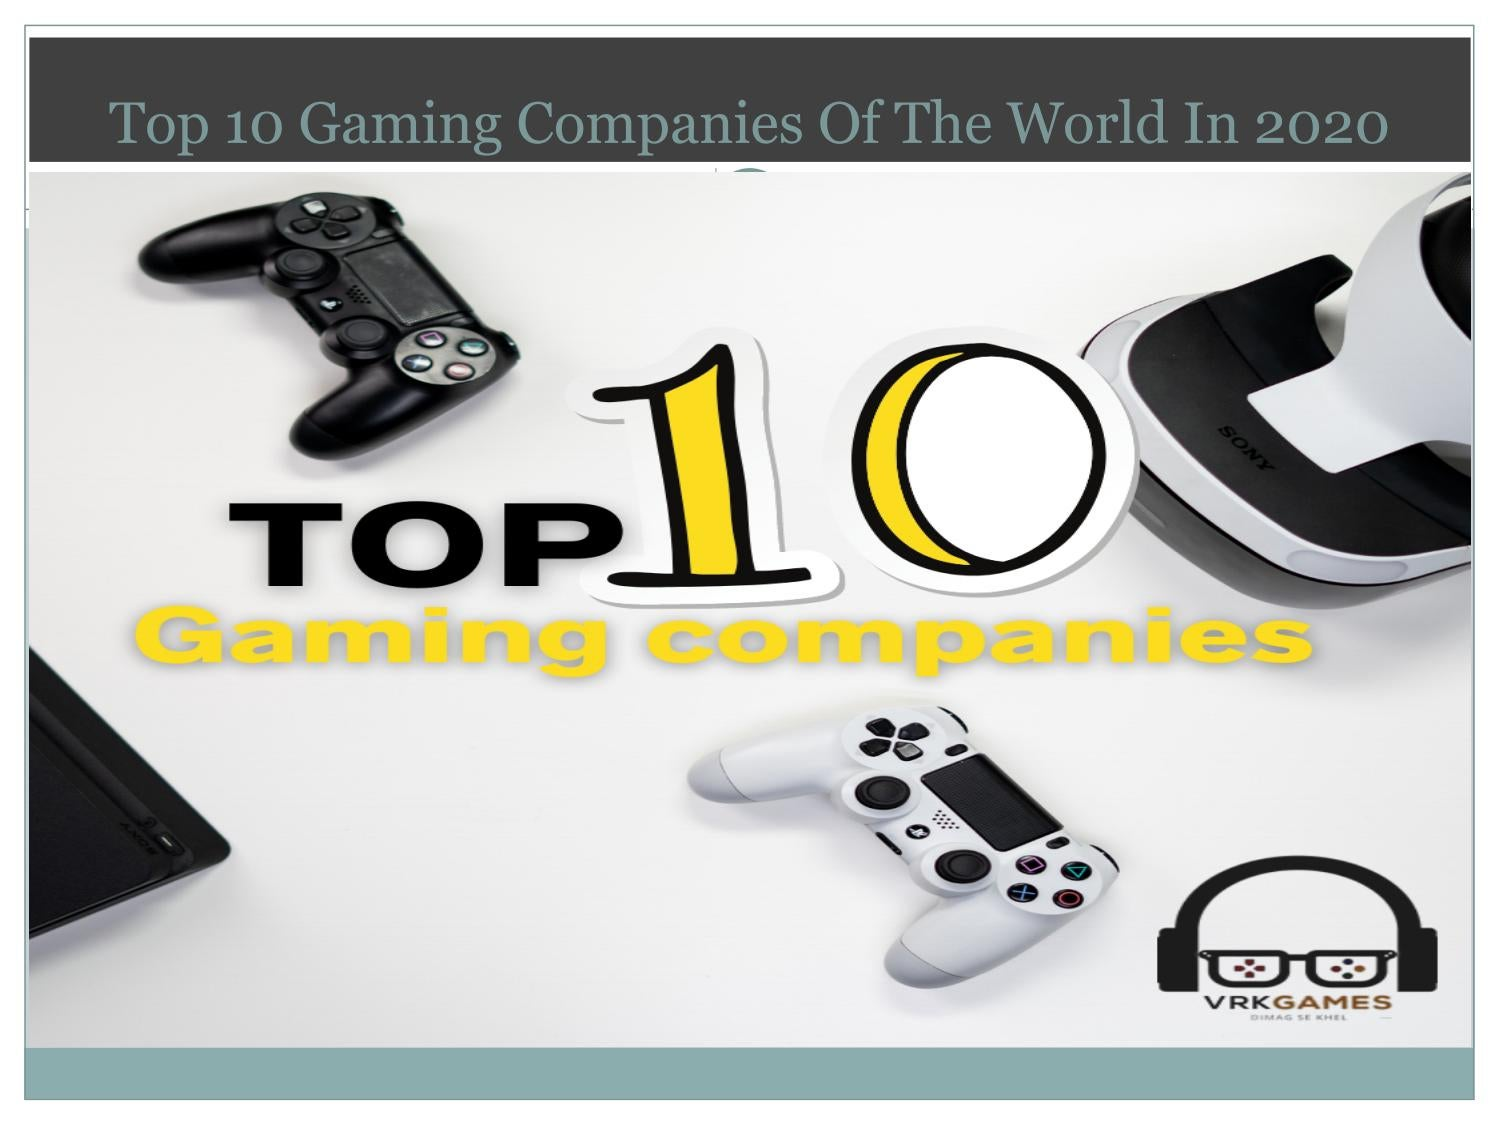 Top 10 Gaming Companies Of The World In 2020